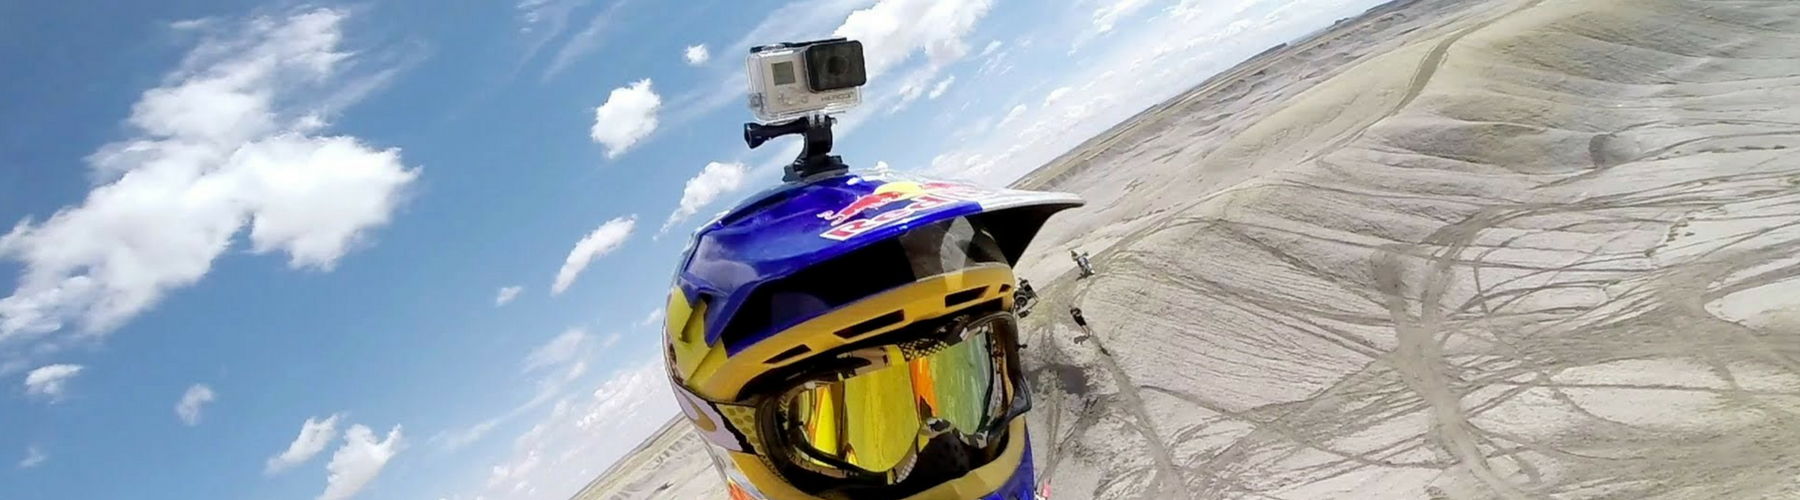 The Reason Gopro Has Had So Much Success Is That They Have Positioned  Themselves As The Authority In Their Industry They Were Able To Do This By  Creating